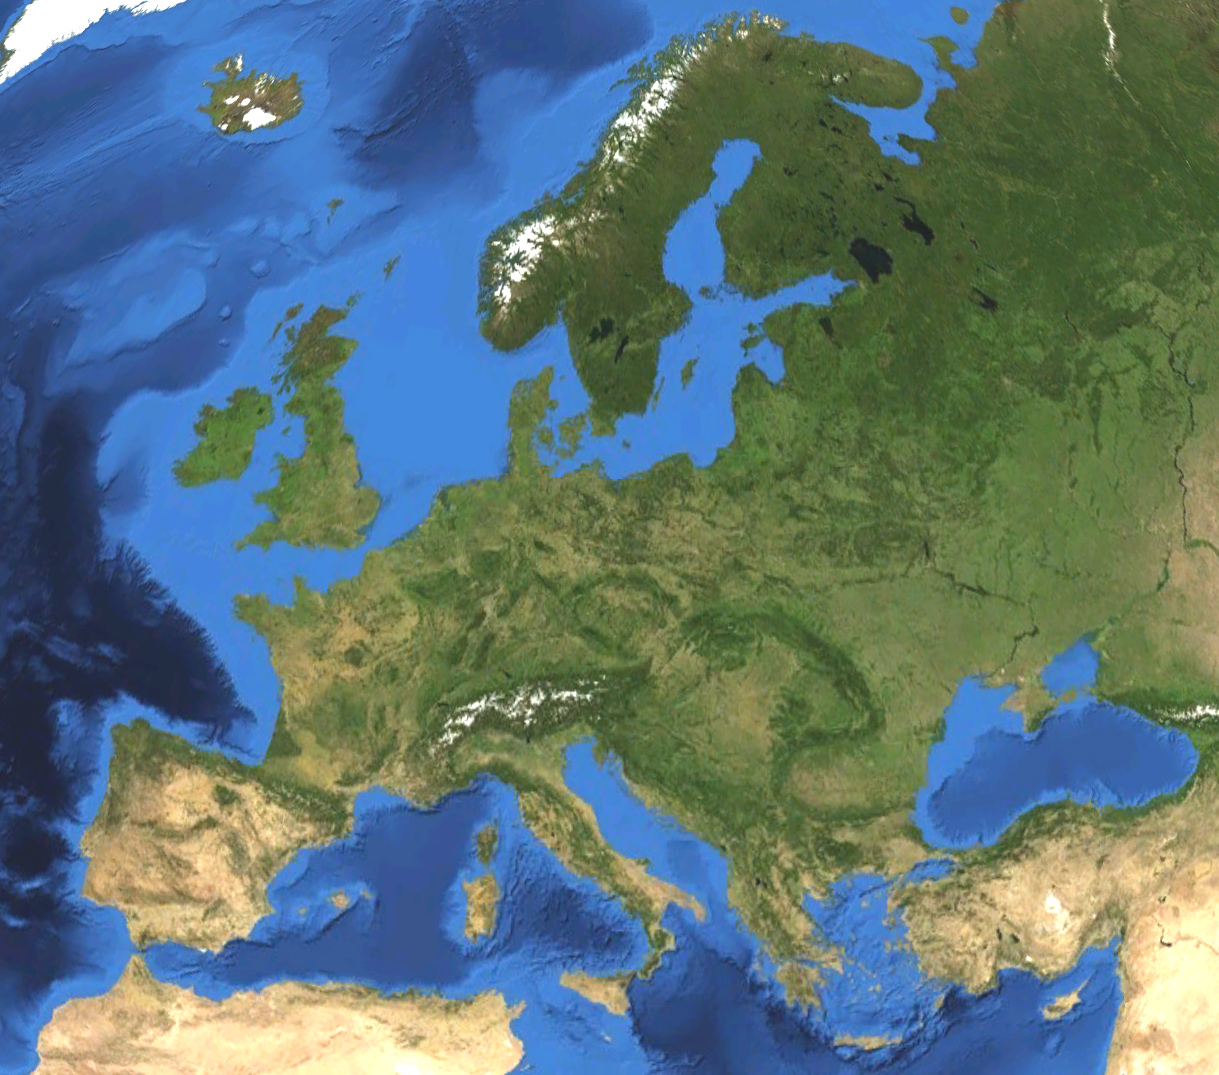 Map Of Europe And Russia Rivers%0A accepted resignation letter